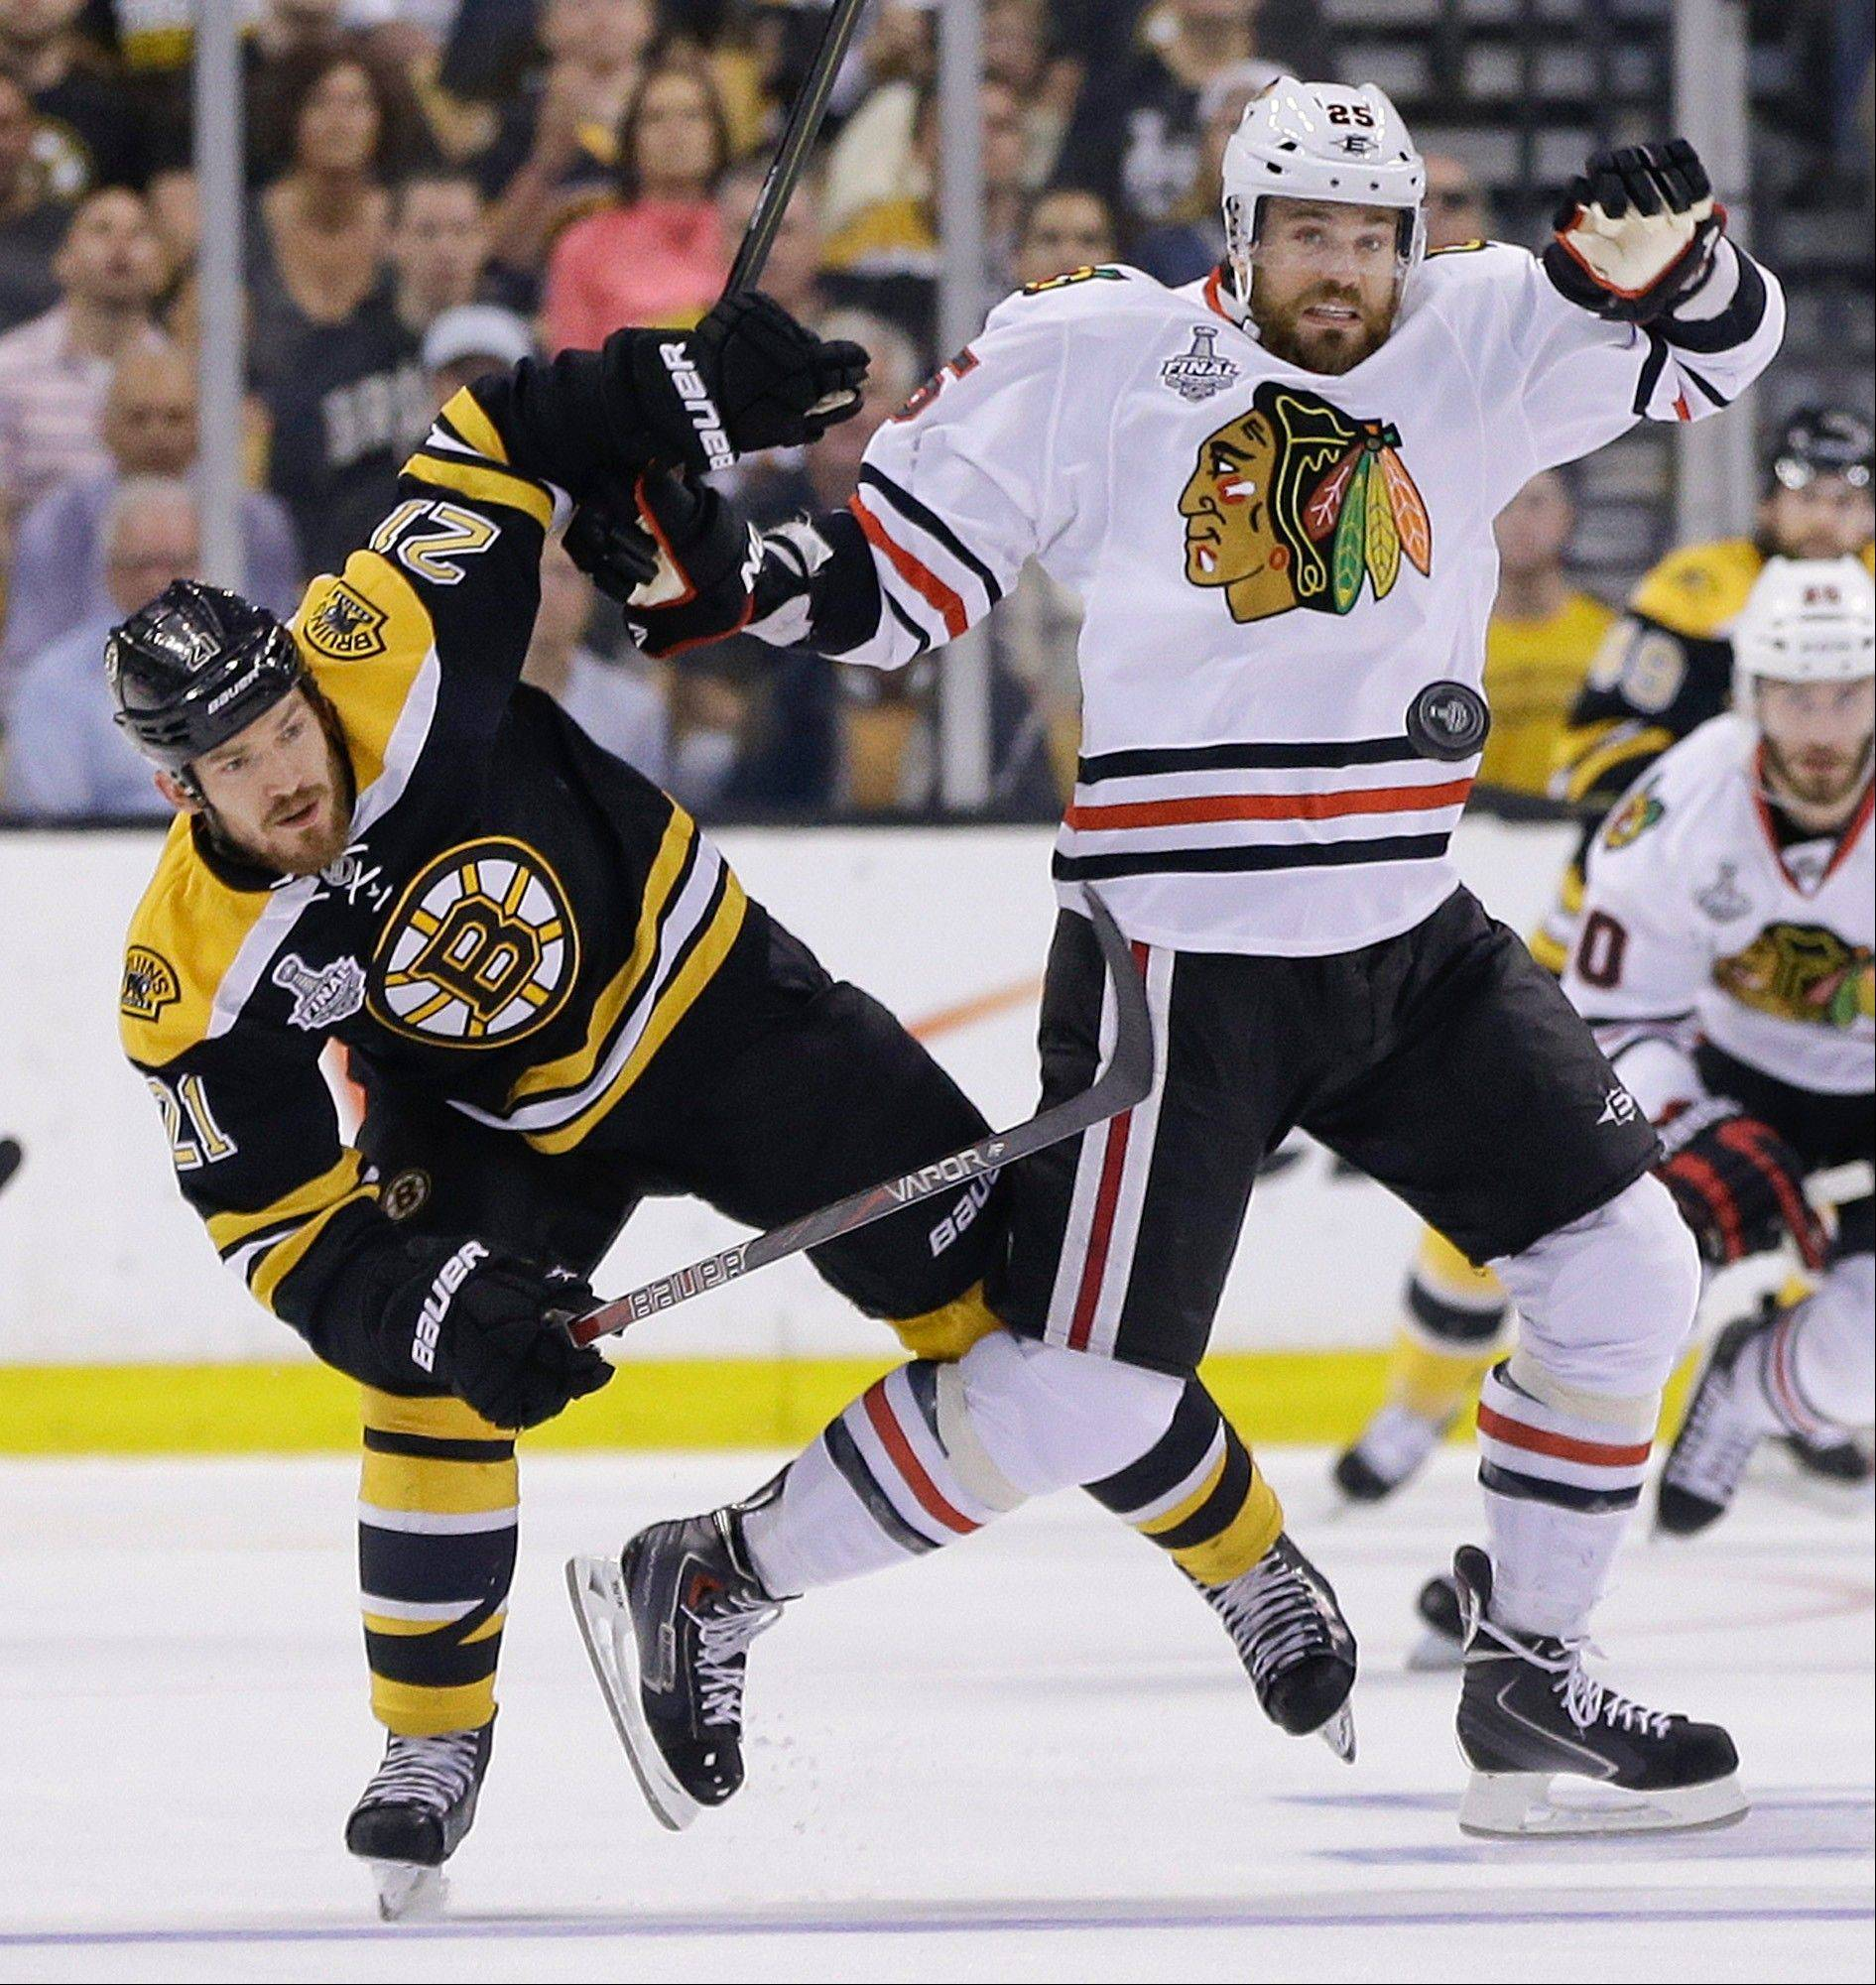 Bruins defenseman Andrew Ference (21) and Blackhawks center Patrick Sharp (10) fight for position as the puck passes during Monday night's Game 6.